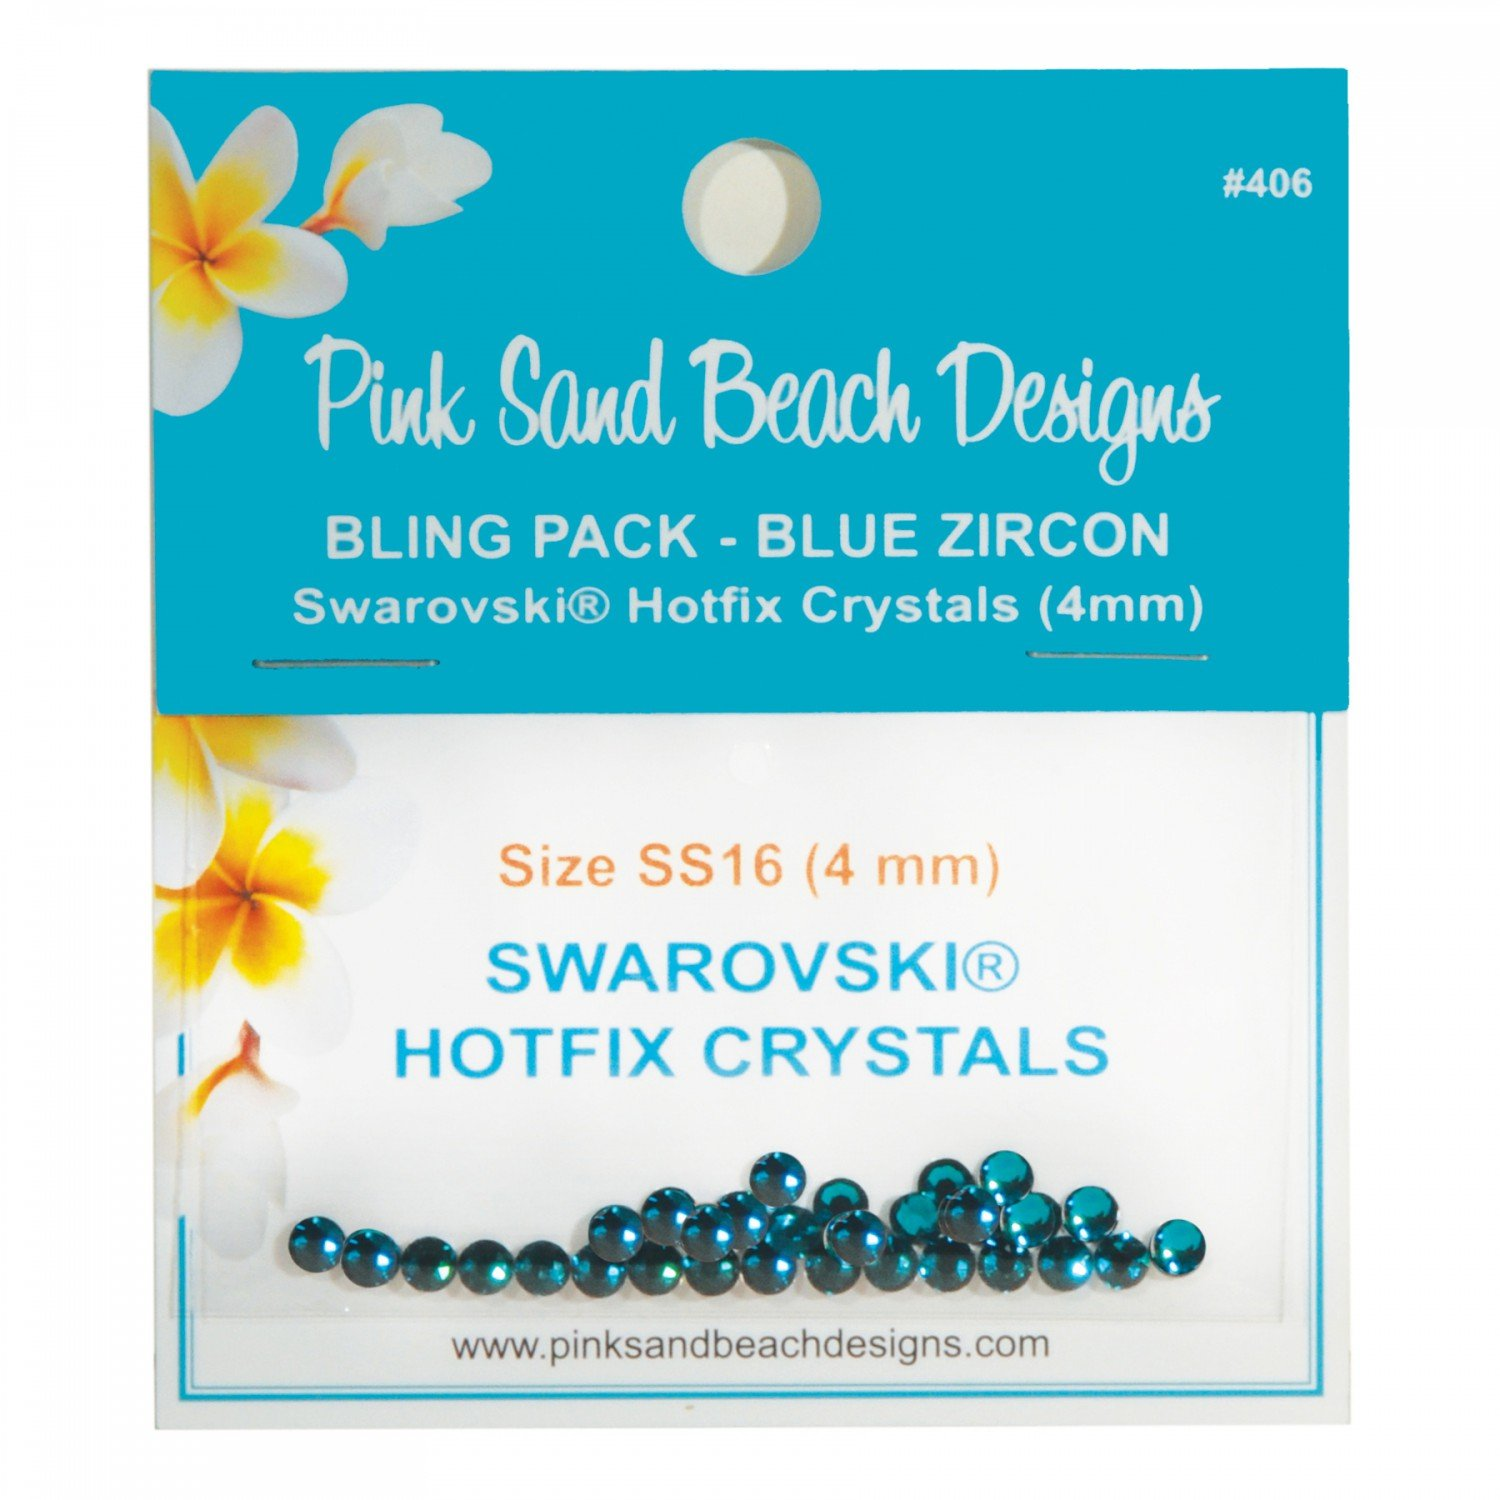 Bling Pack - Swarovski Hotfix Crystal 4mm - Blue Zircon